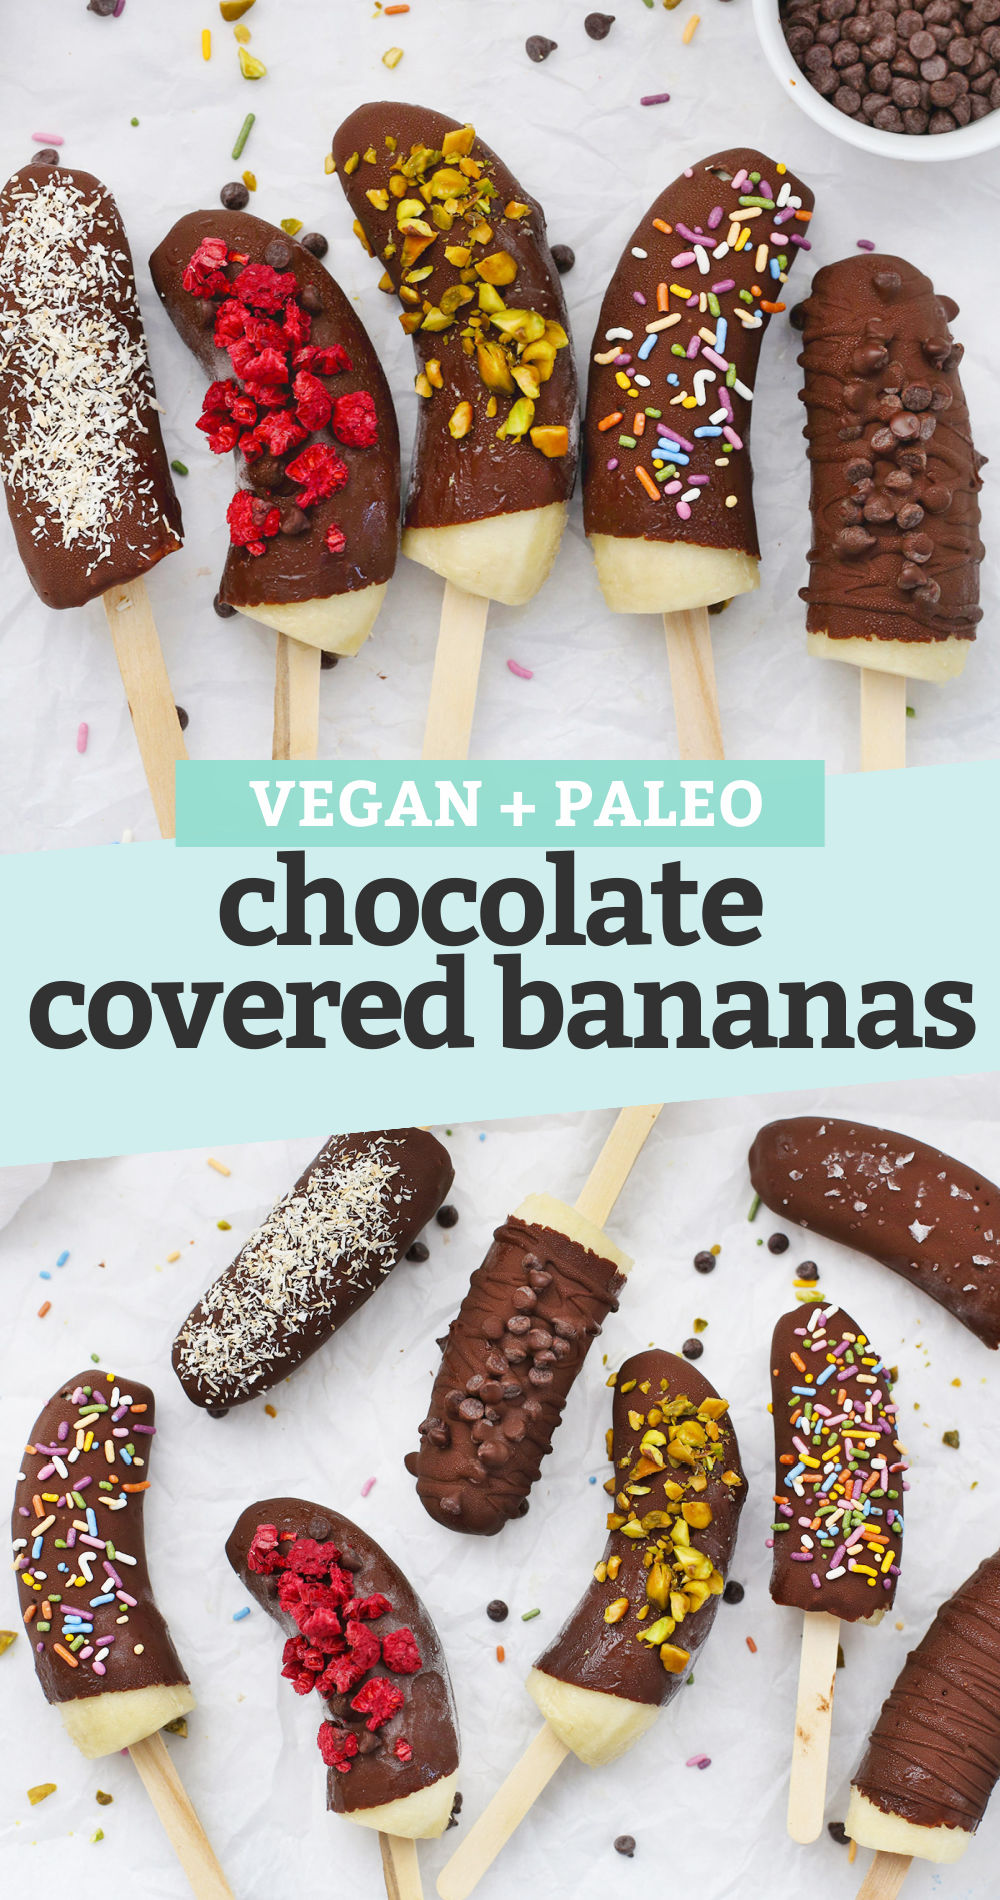 """Collage of Frozen Chocolate Covered Bananas with different toppings with a text overlay that reads """"Vegan + Paleo Chocolate Covered Bananas"""""""